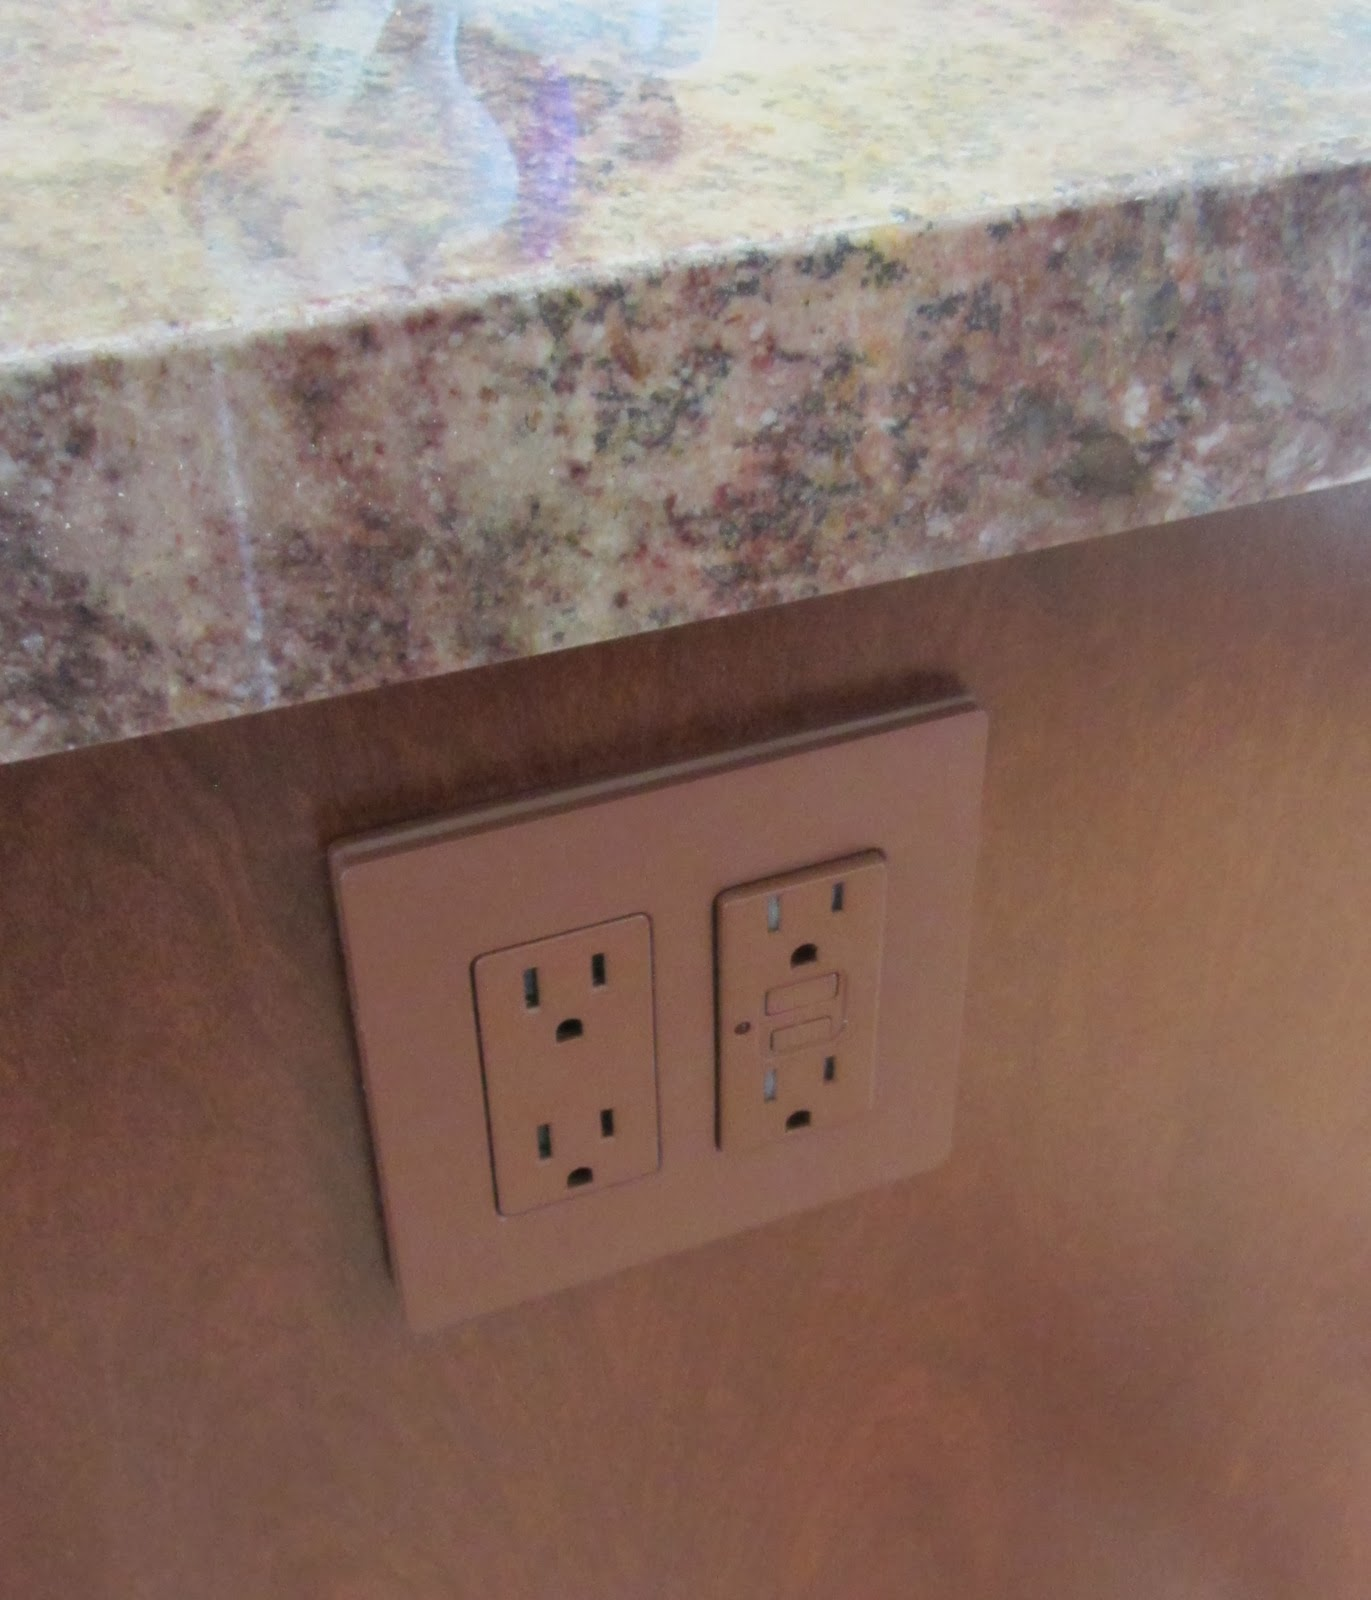 Kitchen Island Outlet Enzy Living Alternatives To Ugly Outlets In Kitchen Islands